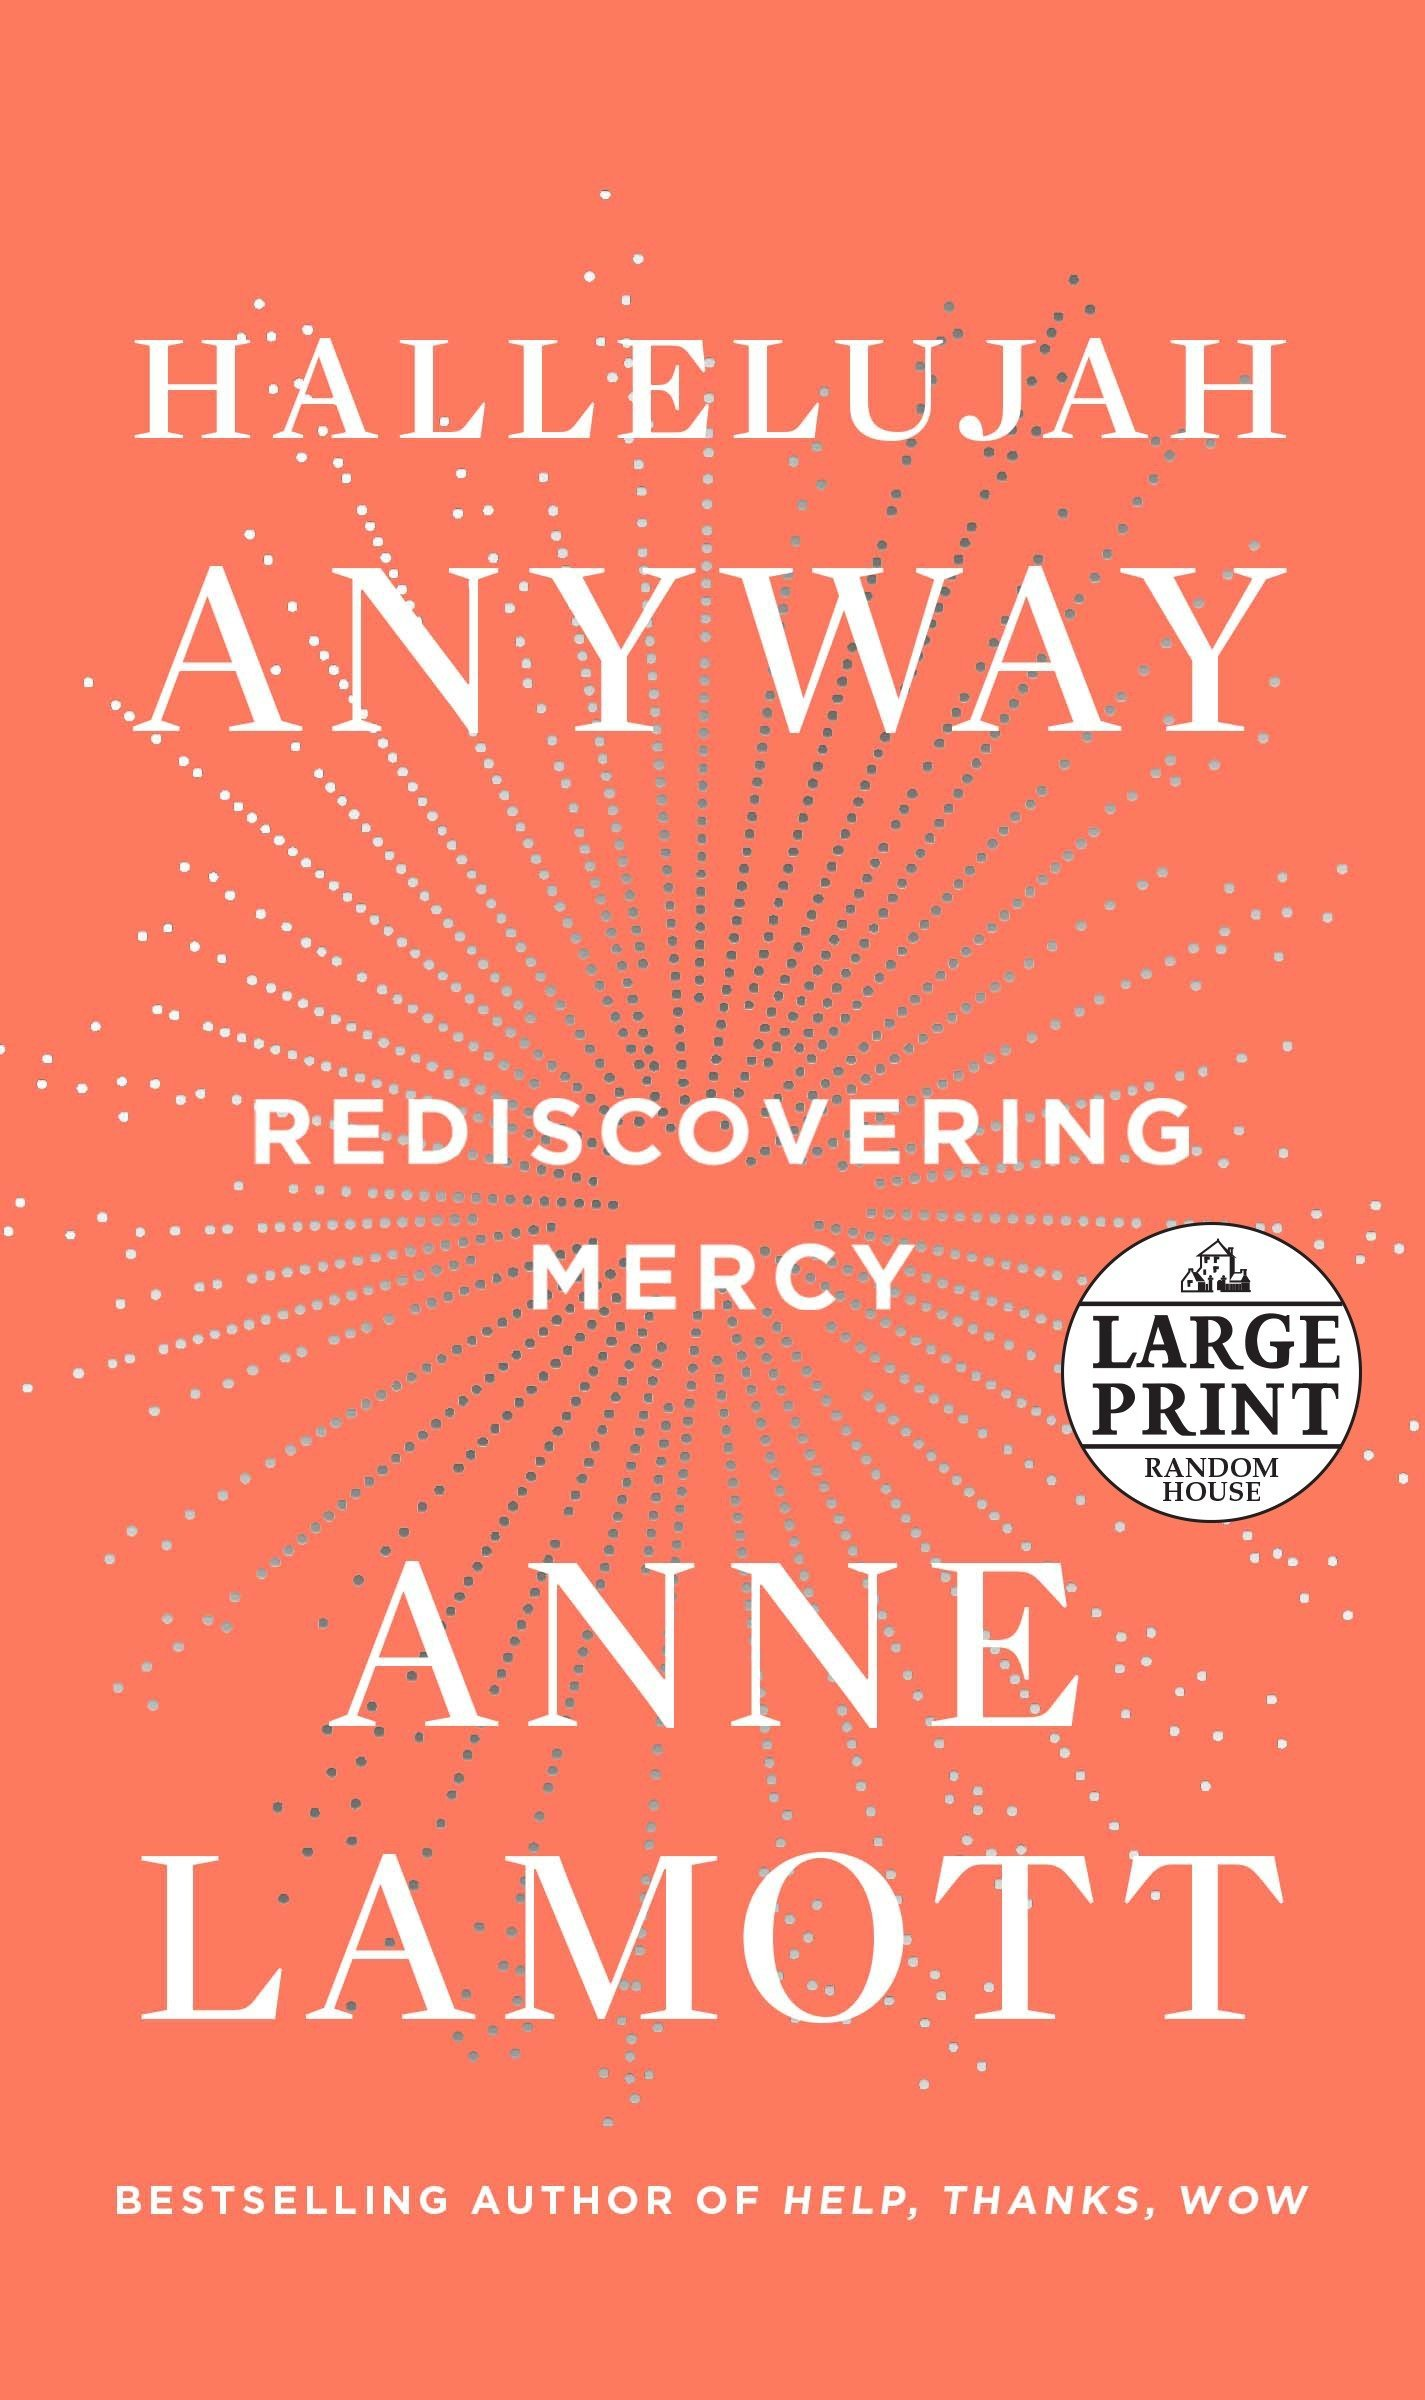 Hallelujah anyway : rediscovering mercy / Anne Lamott.